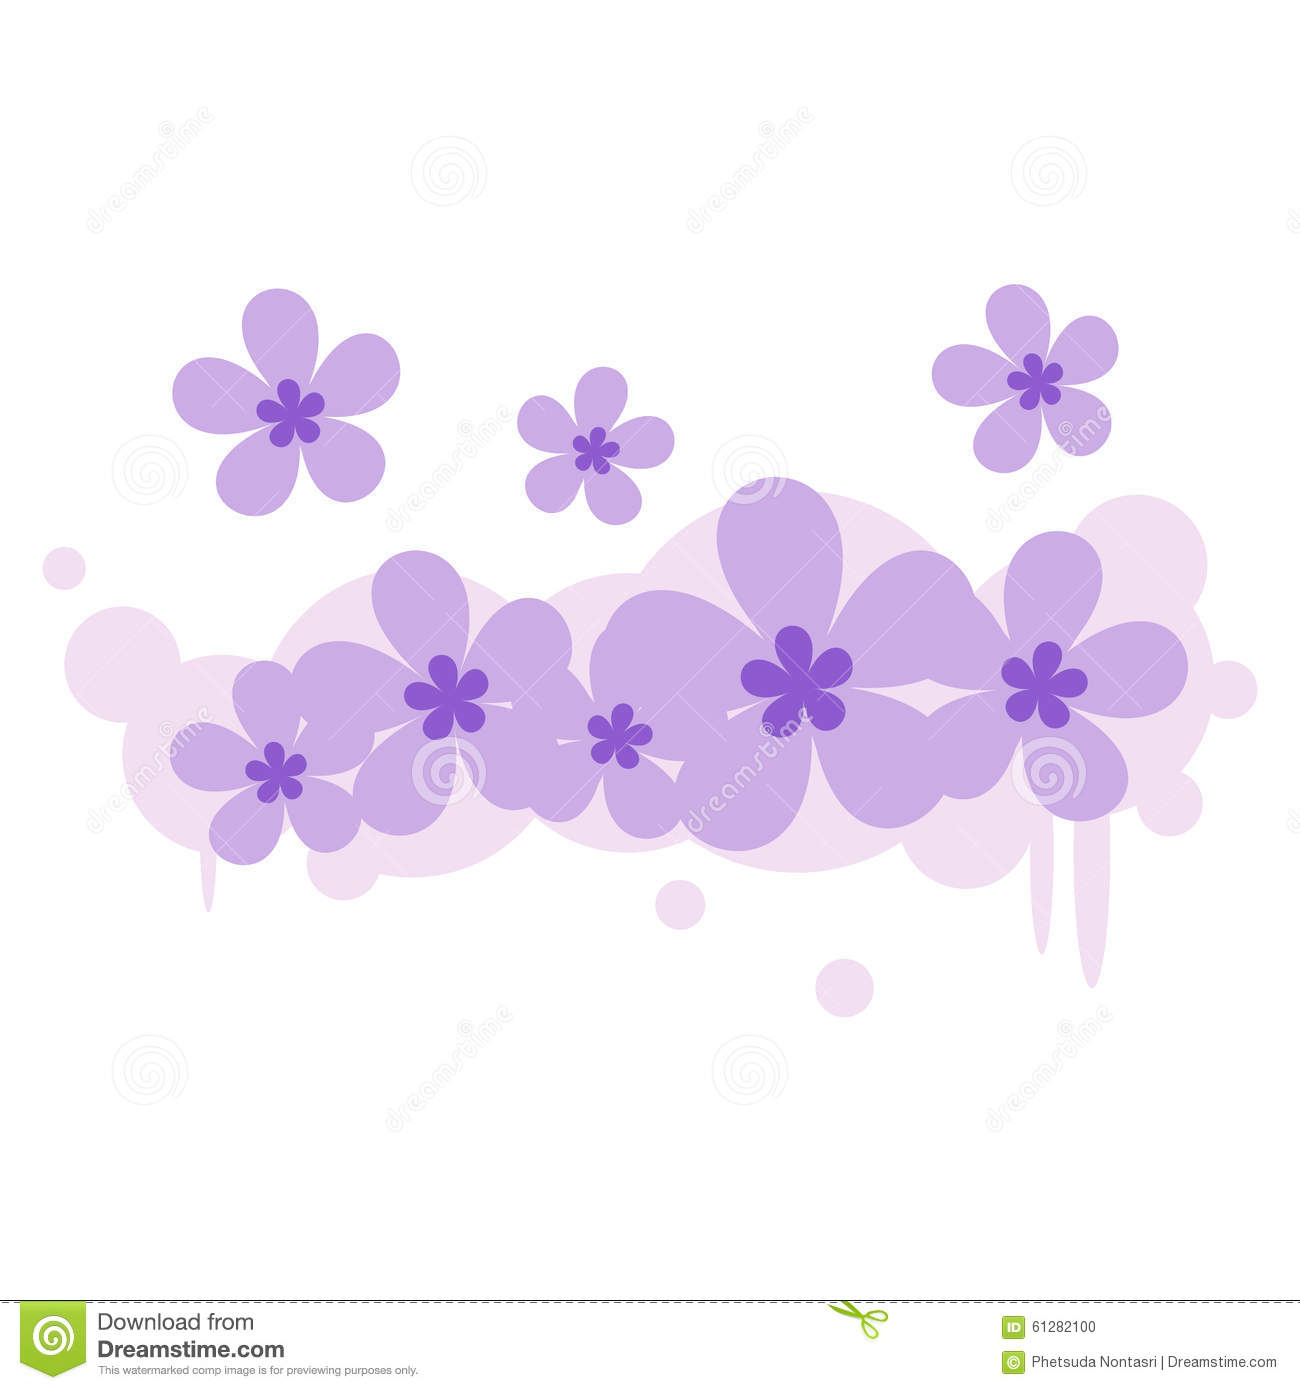 Flower Floral Fabric Background Illustration Design